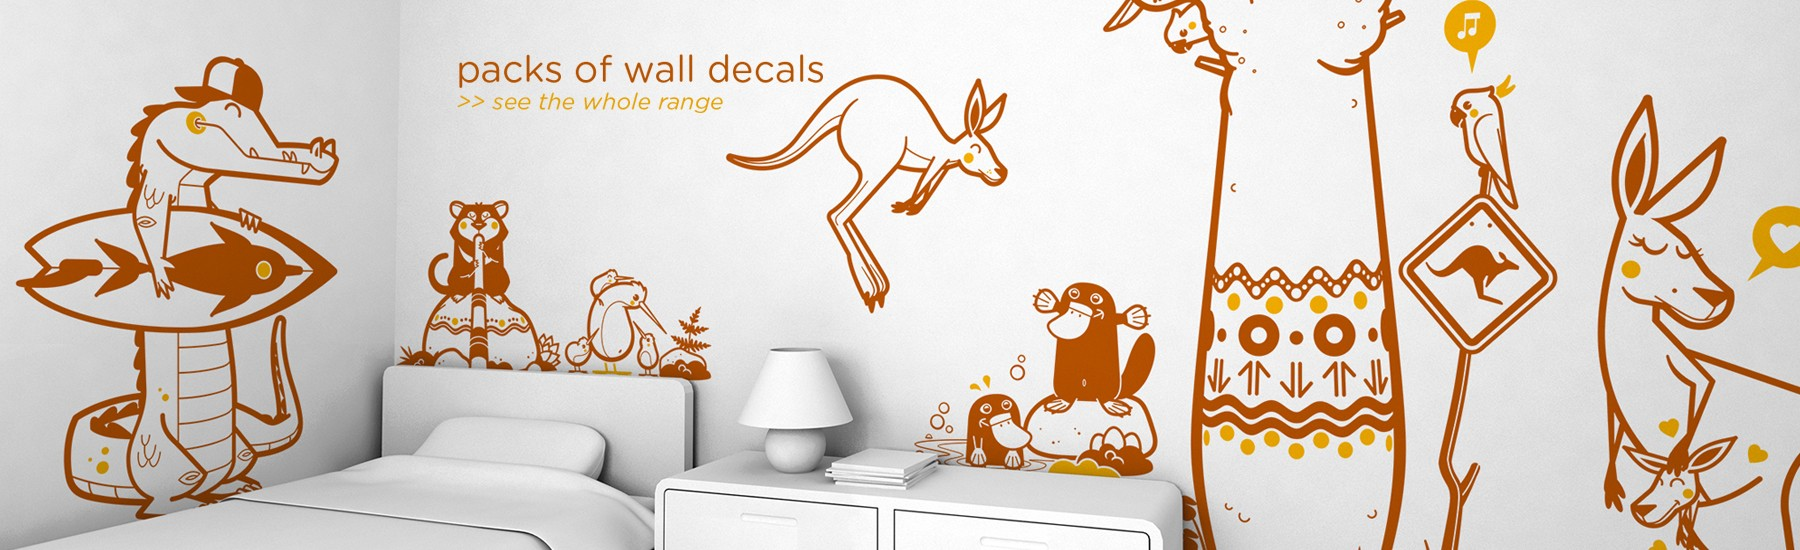 PACKS OF KIDS WALL DECALS